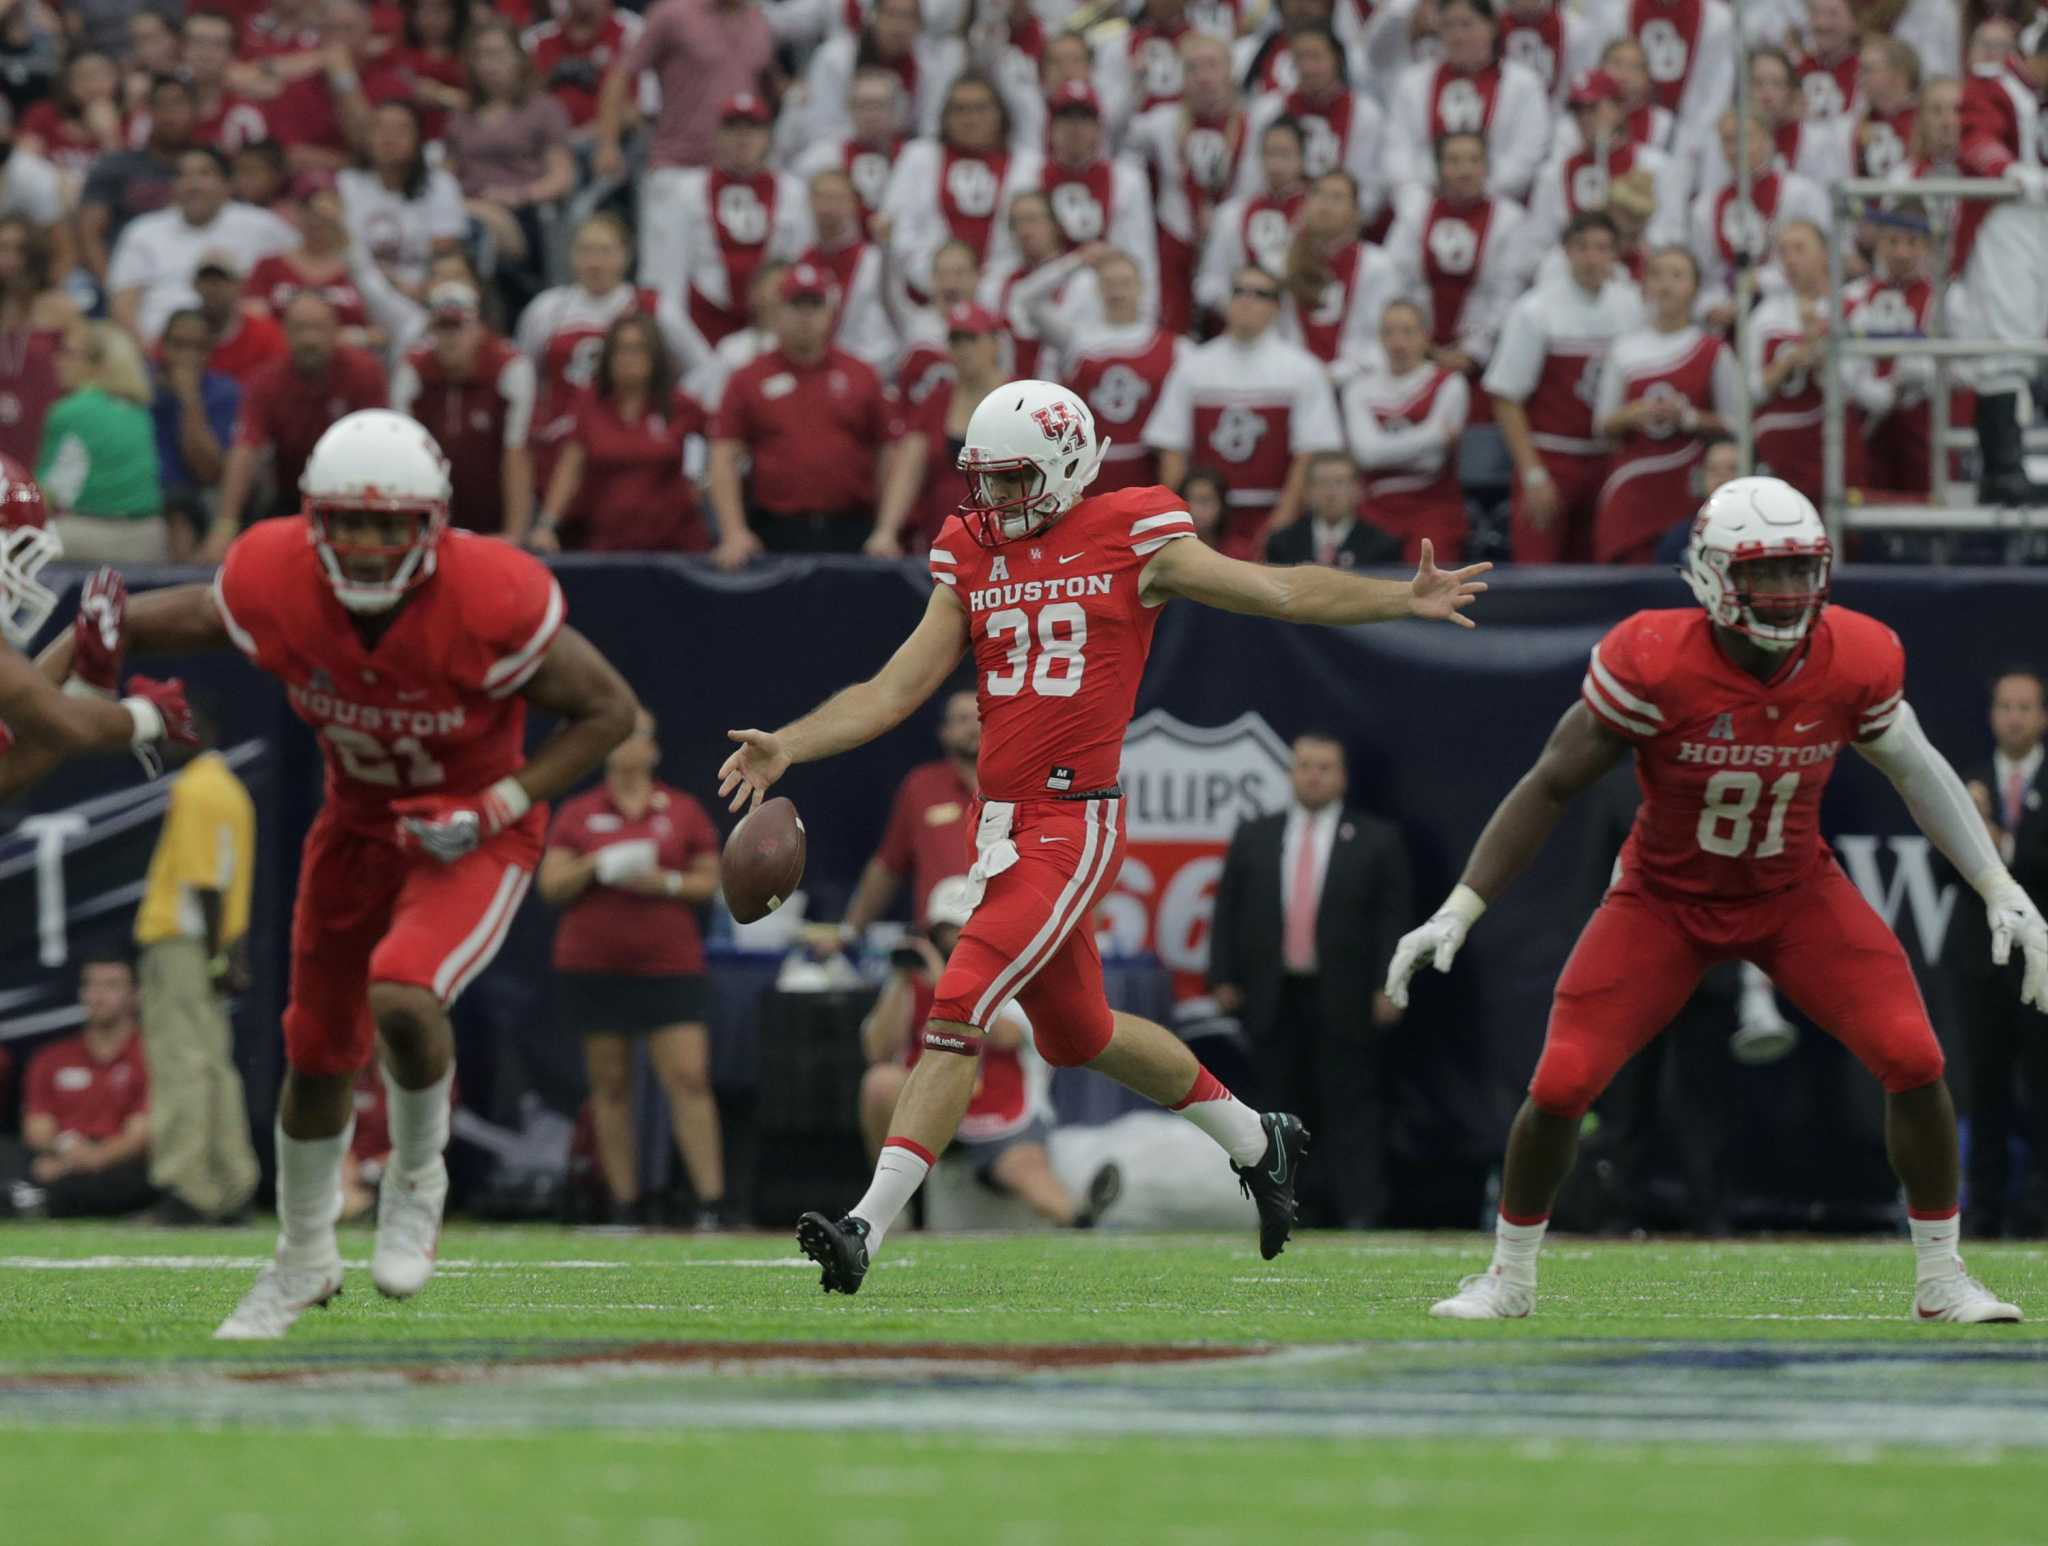 UH's best player? Dane Roy, the punter